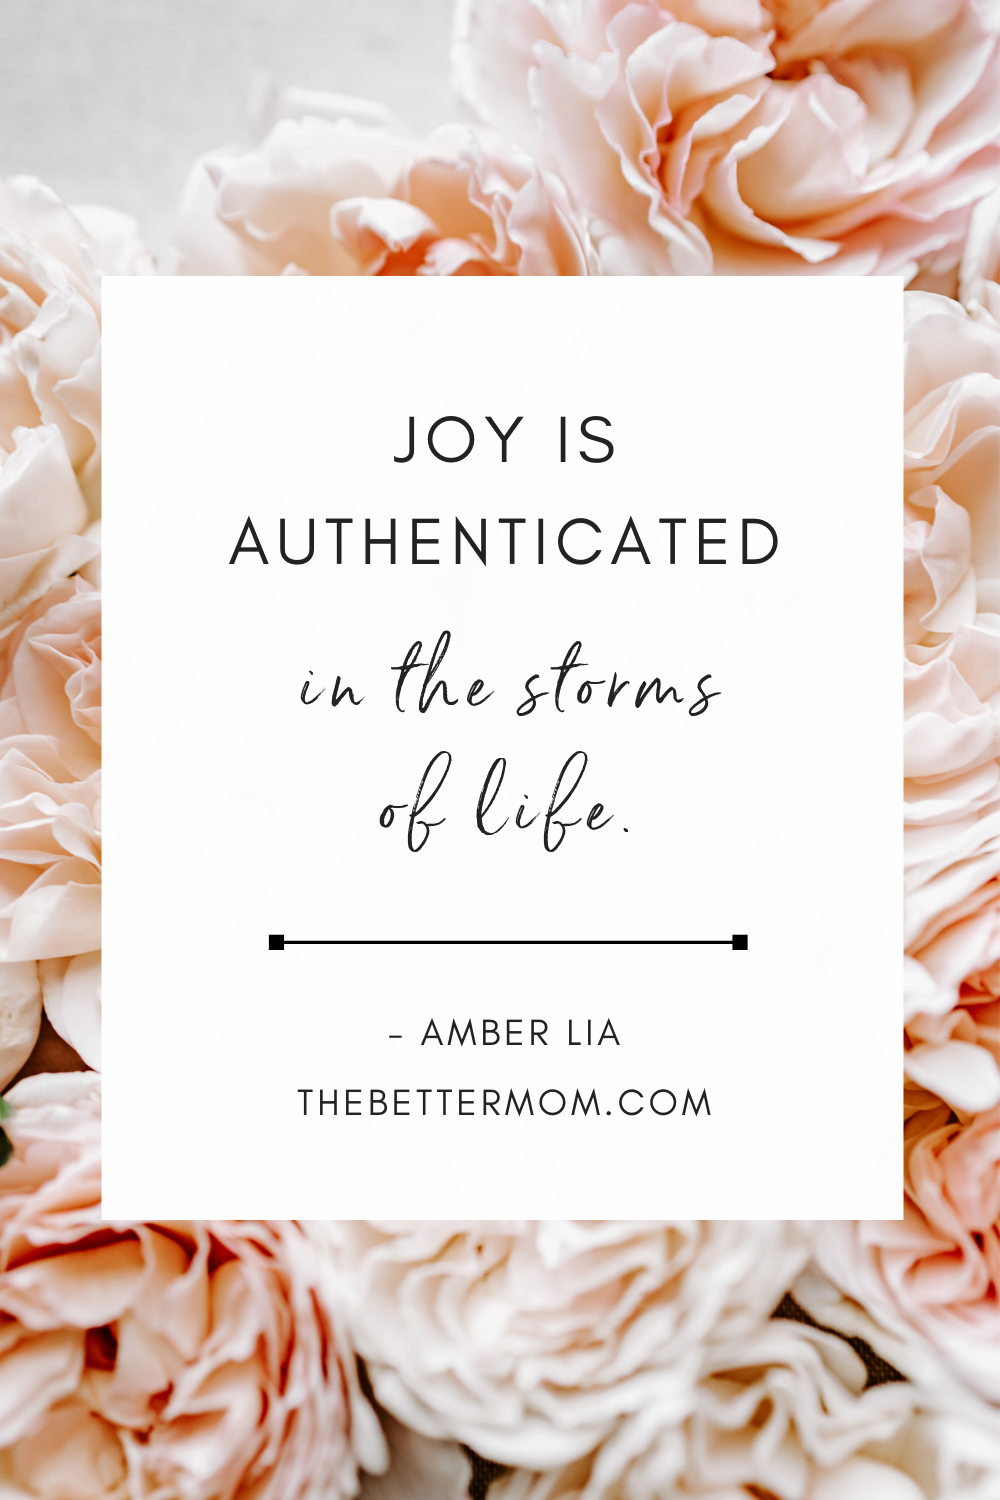 TBM-Joy-is-authenticated-in-the-storms-of-life.png